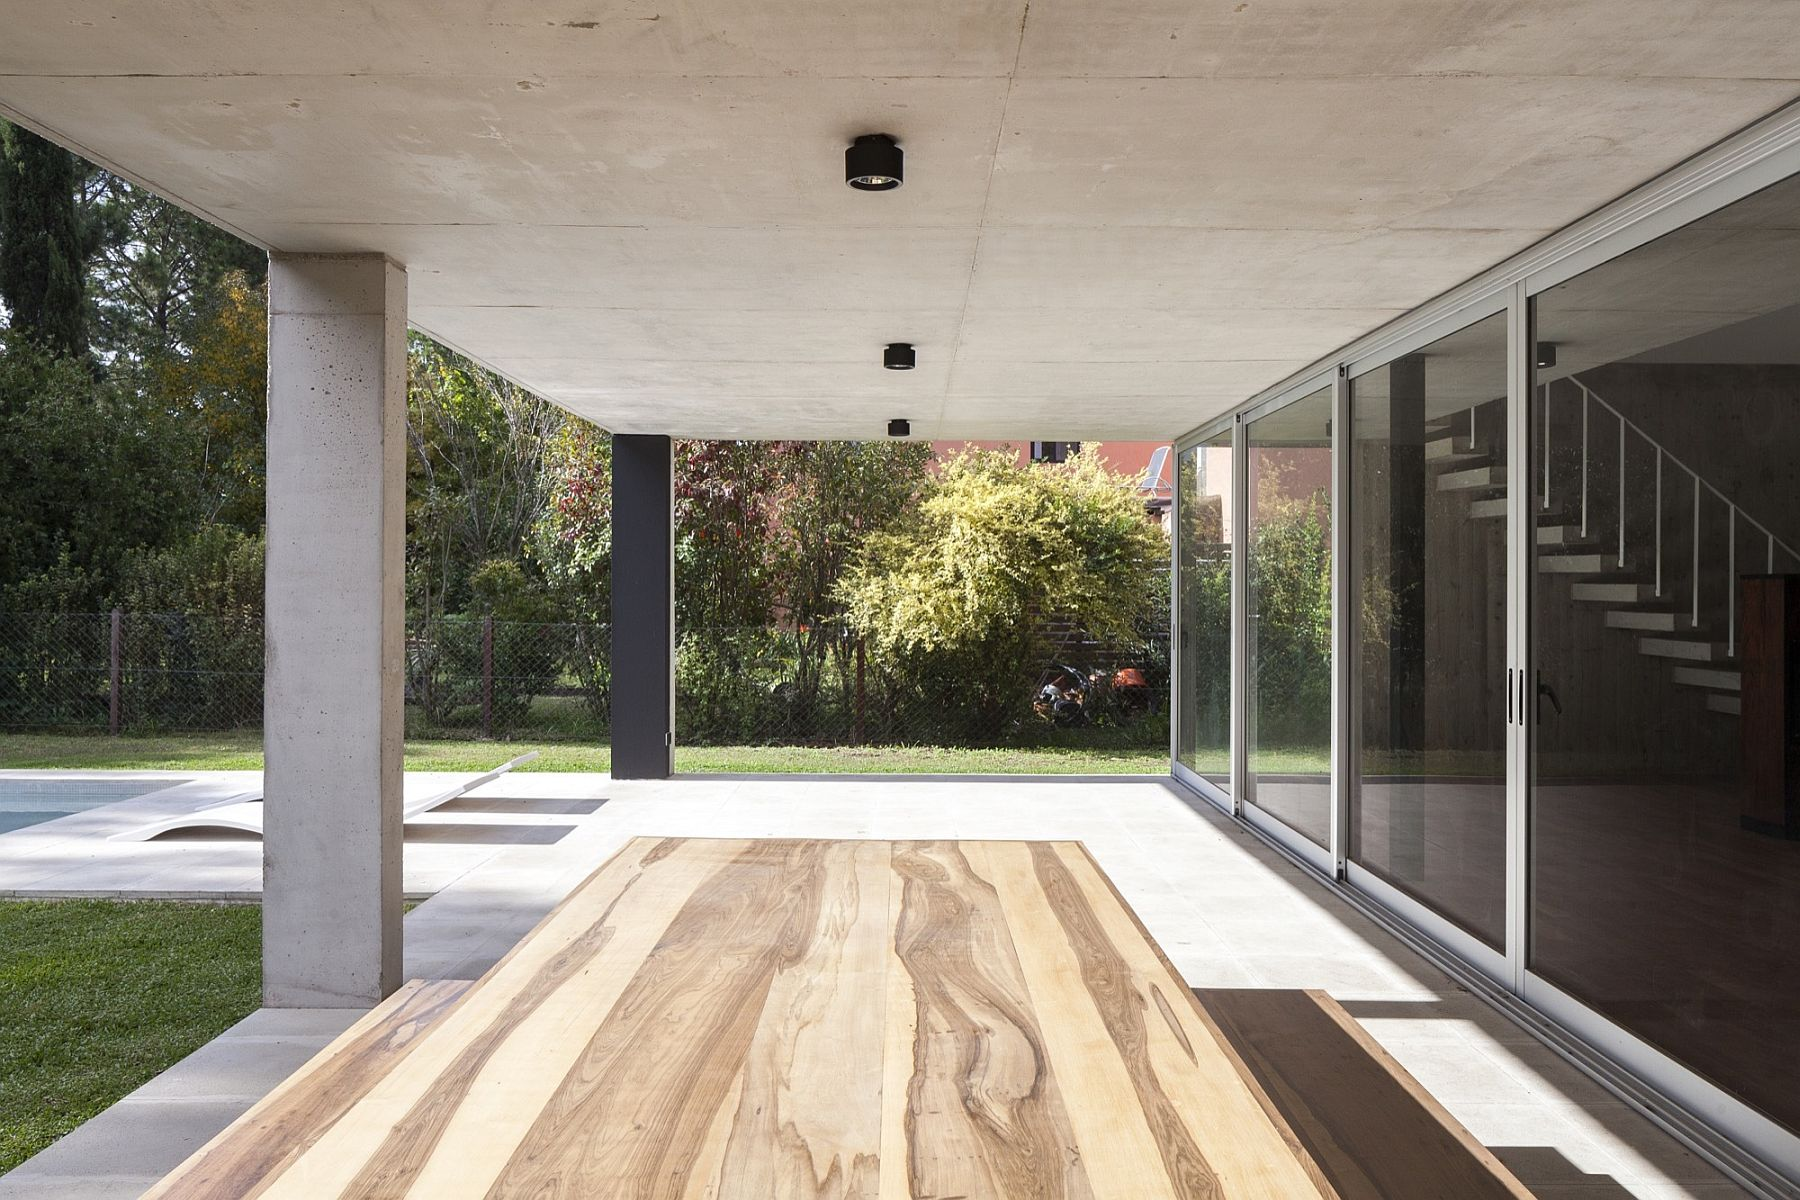 Outdoor dining space under the natural structure of the home that acts as the pergola